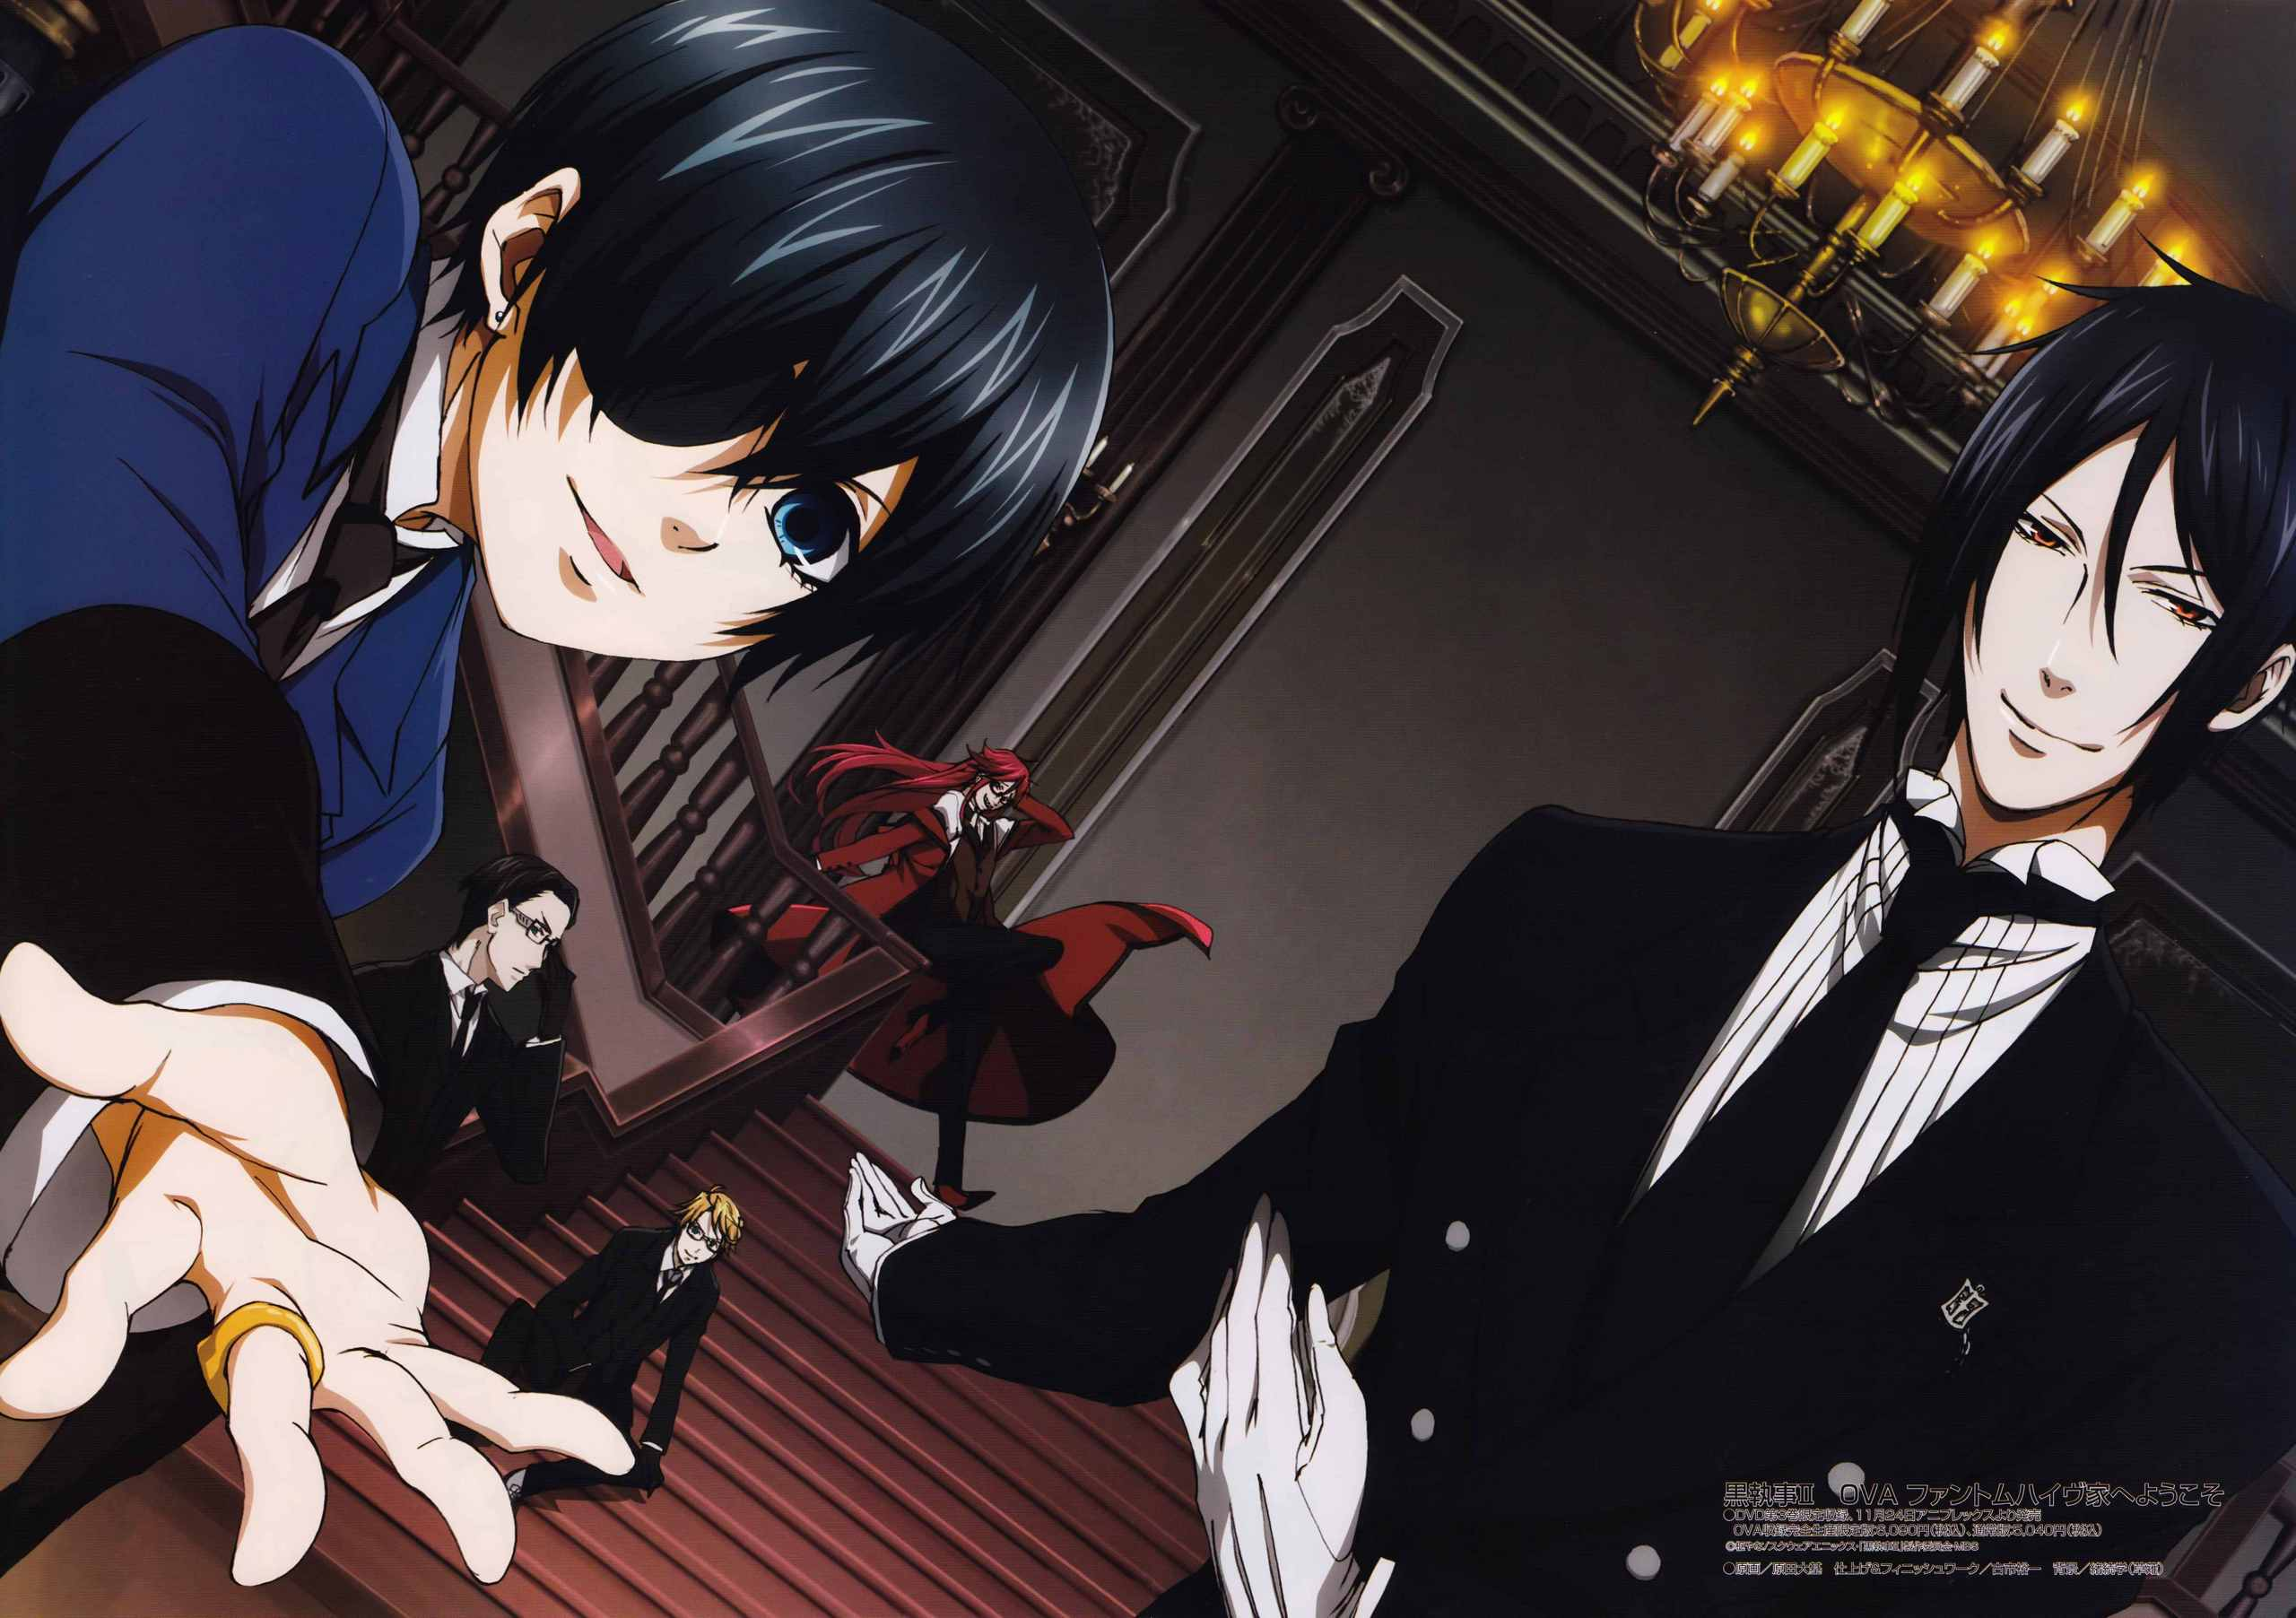 Kuroshitsuji (Black Butler) images Ciel,his butler and others HD wallpaper and background photos